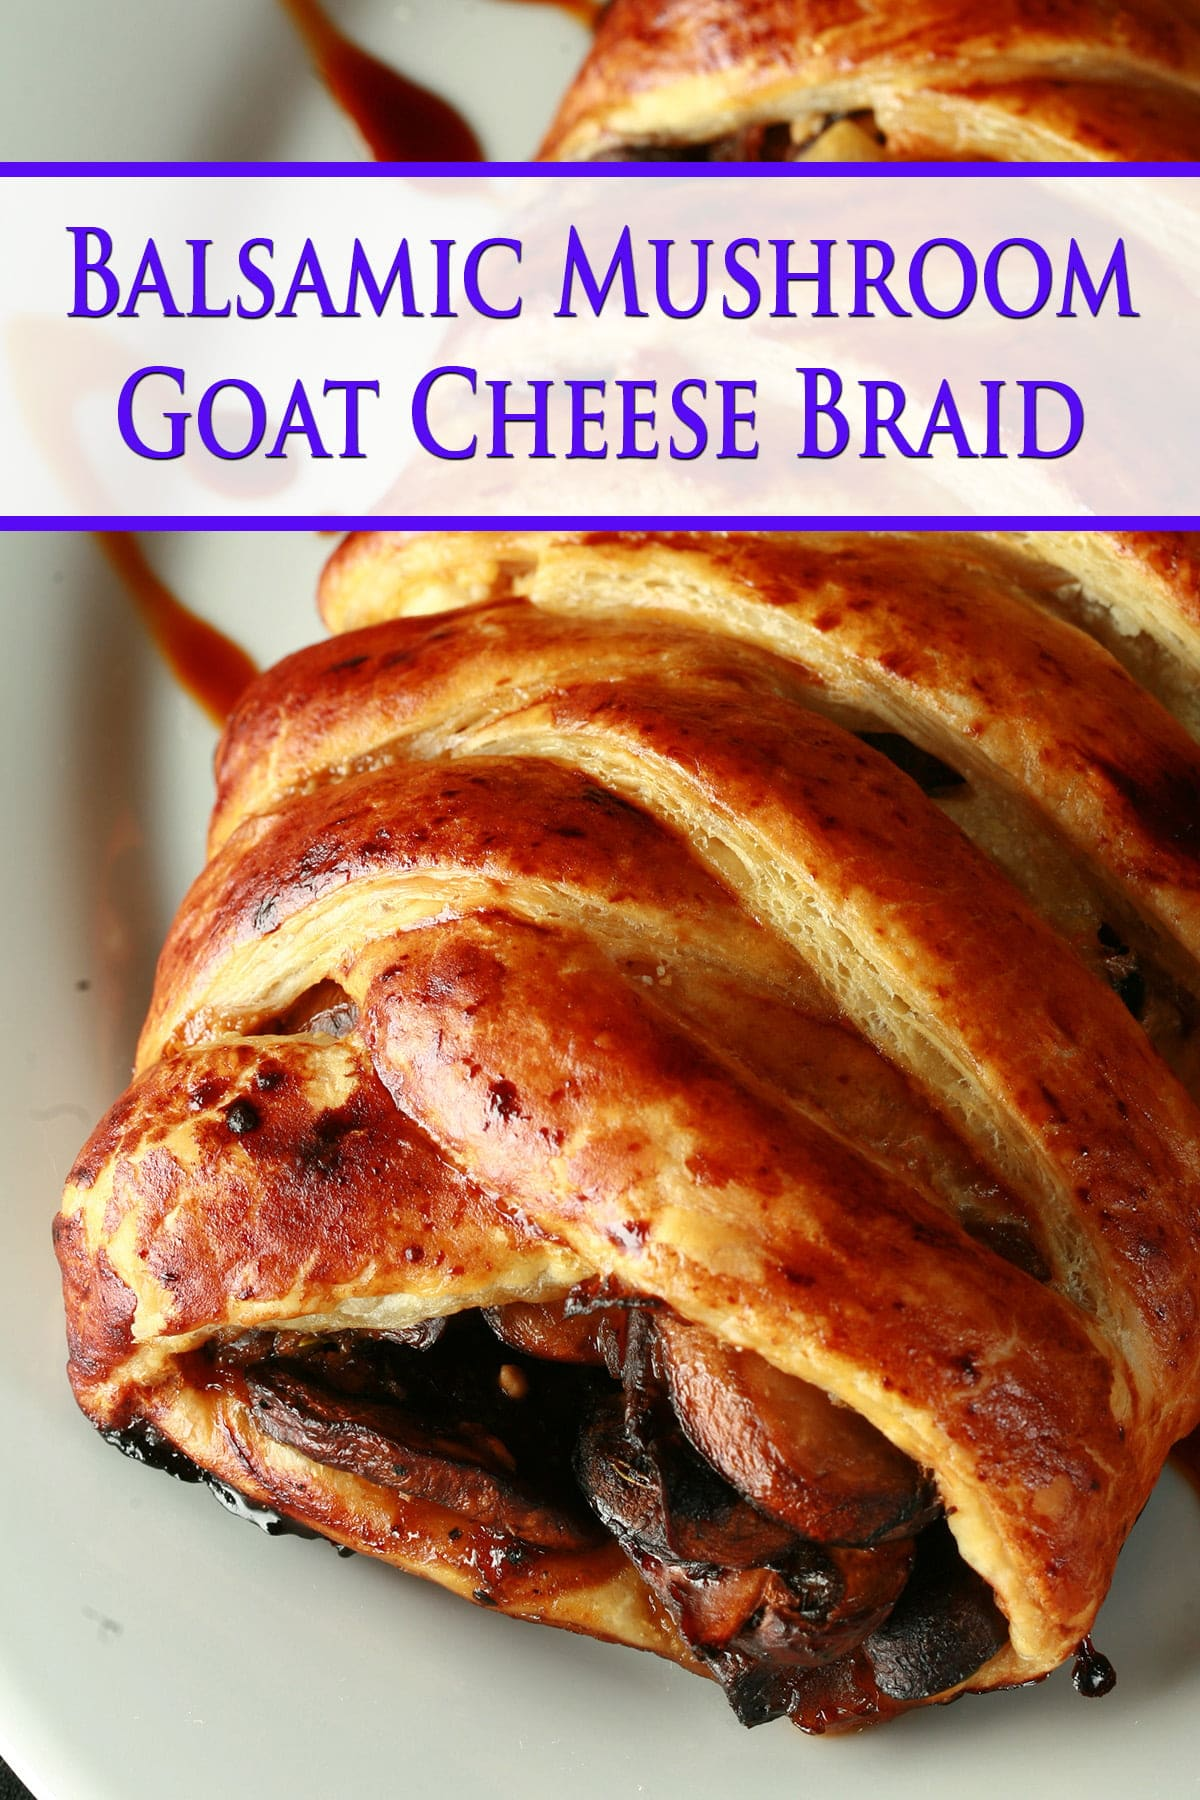 Balsamic Mushroom goat cheese braid - A braided puff pastry shows a mushroom filling and a balsamic vinegar drizzle over it